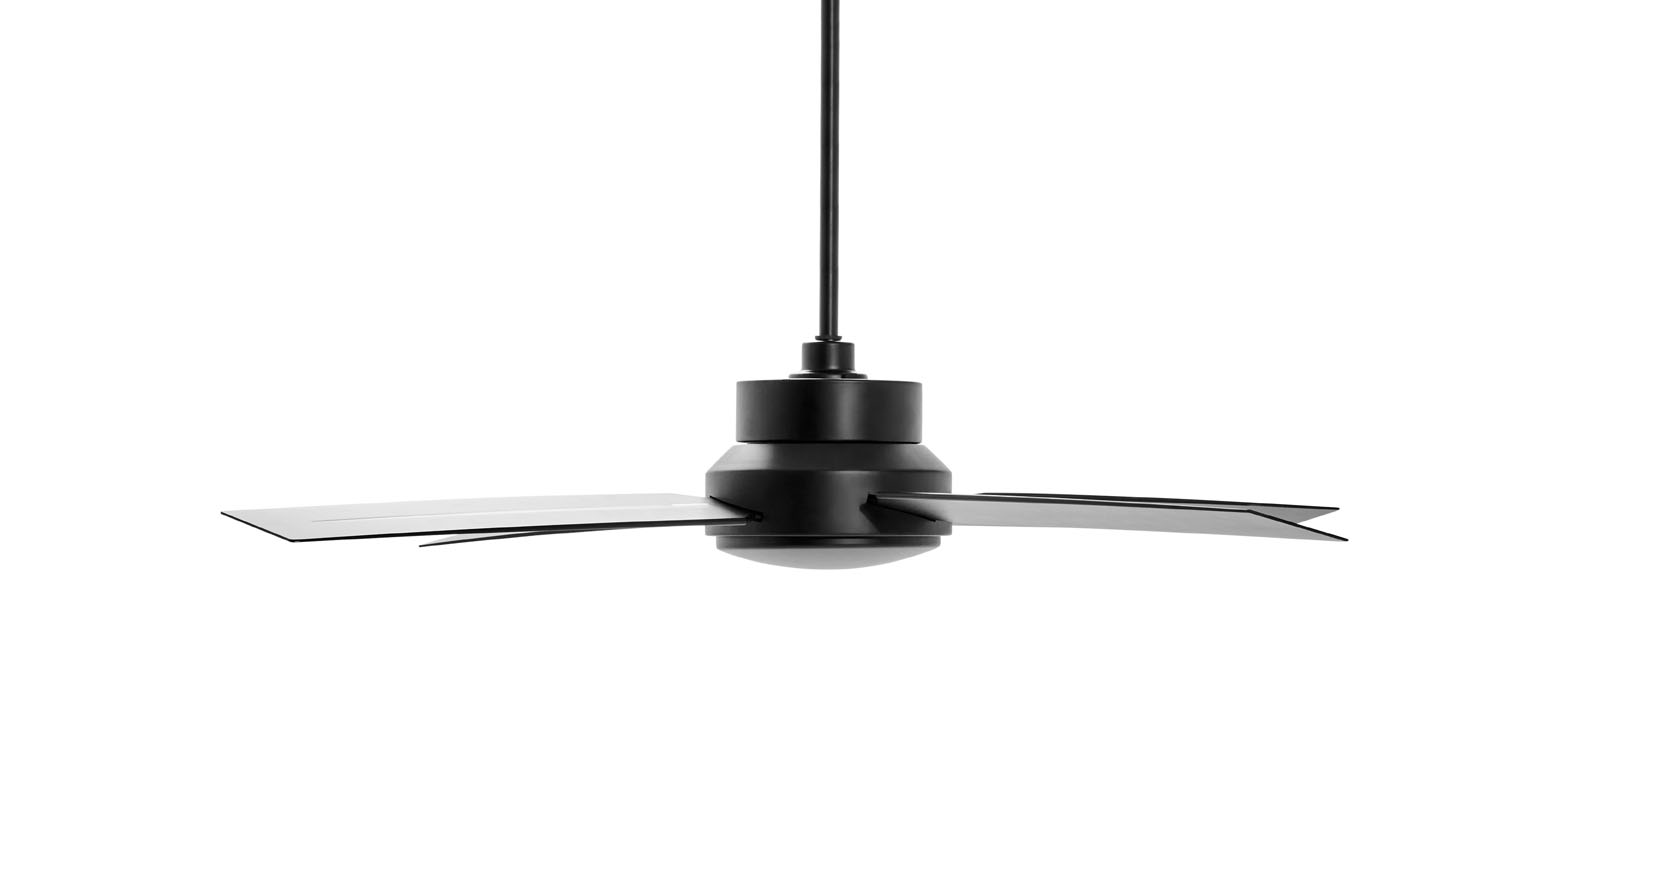 The Dialogue Outdoor Ceiling Fan